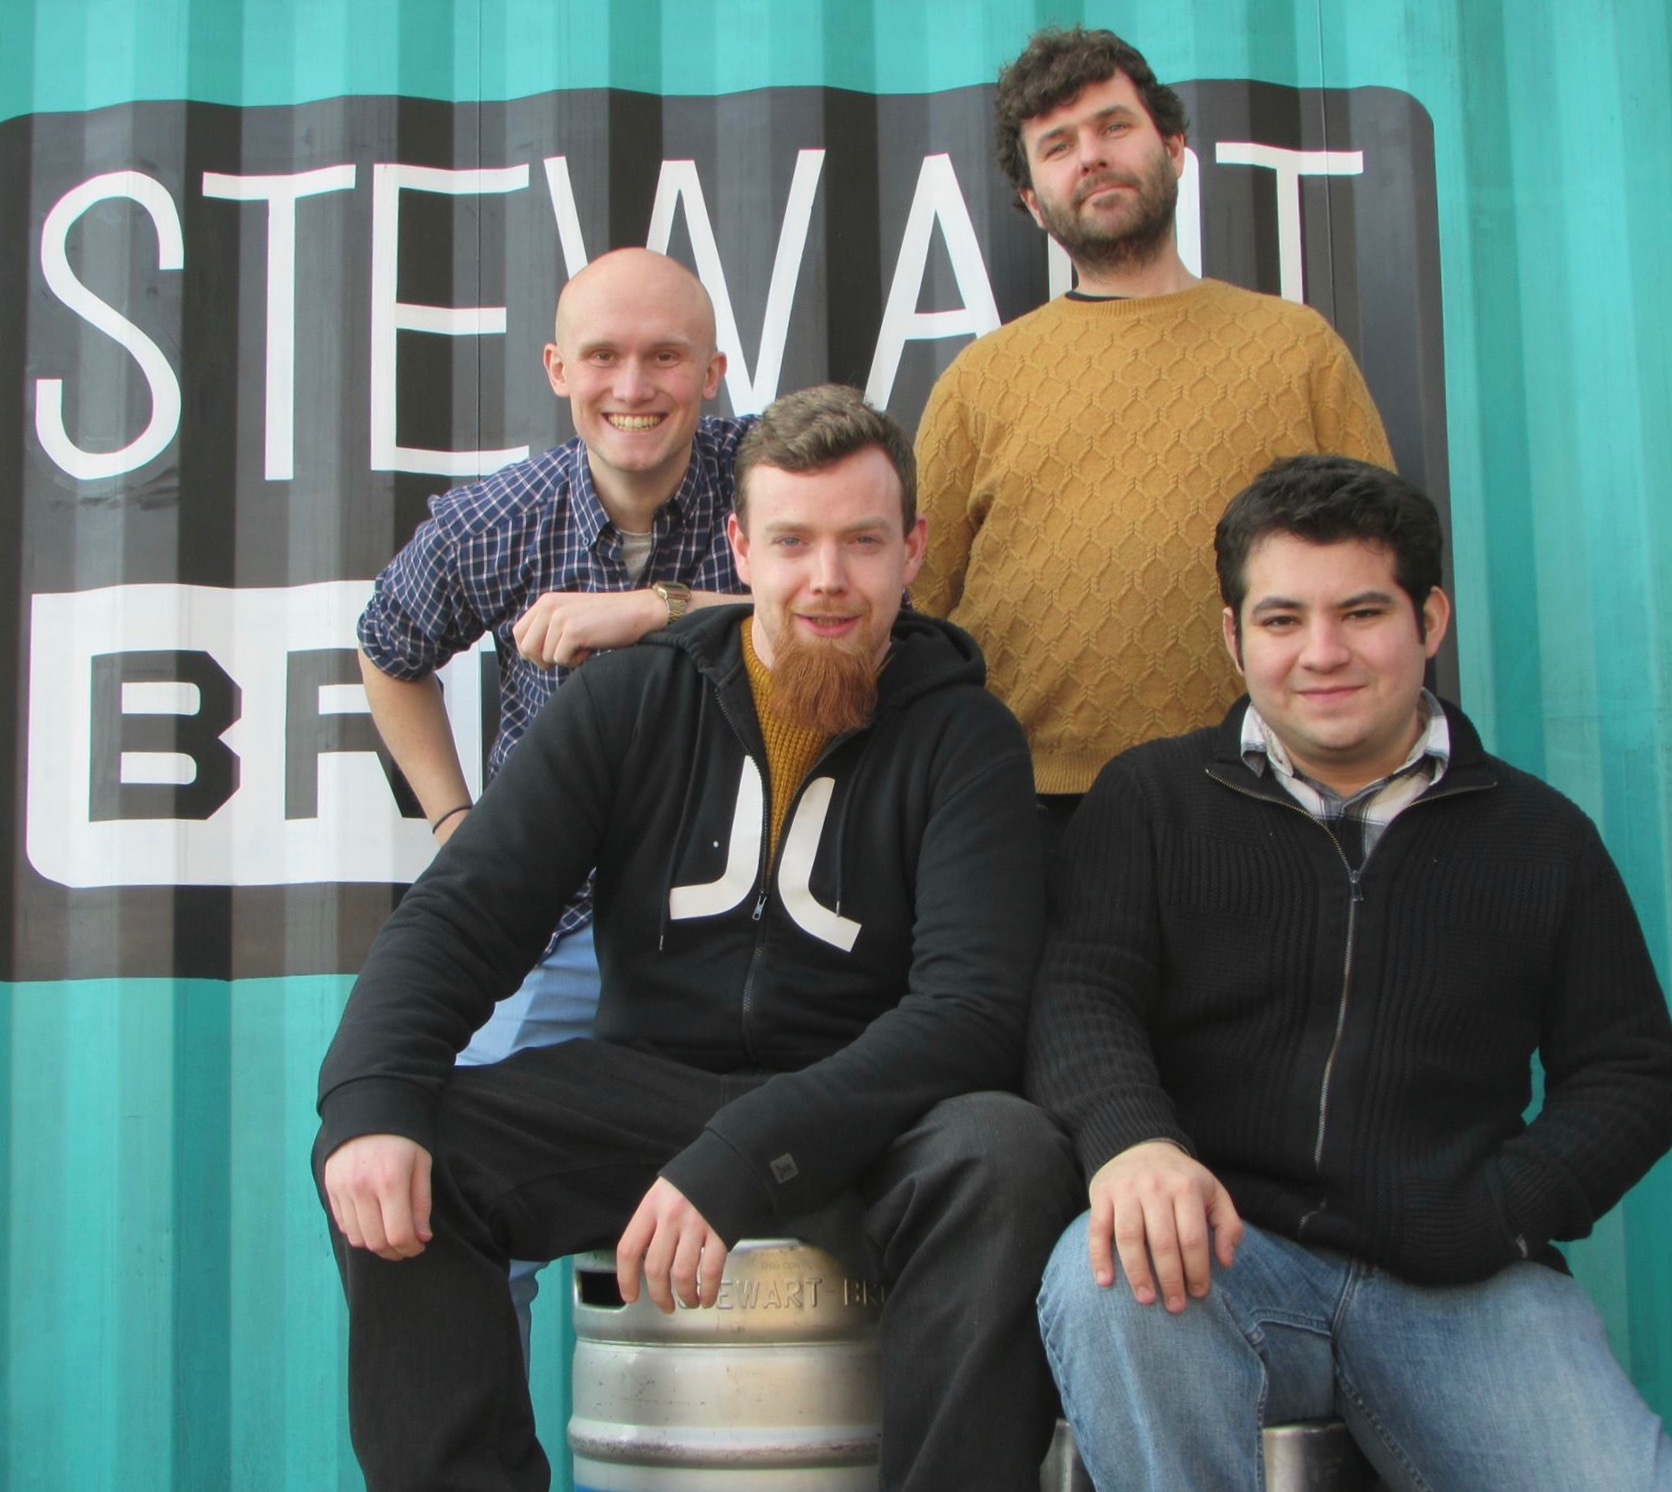 Stewart Brewing team up with Heriot-Watt University